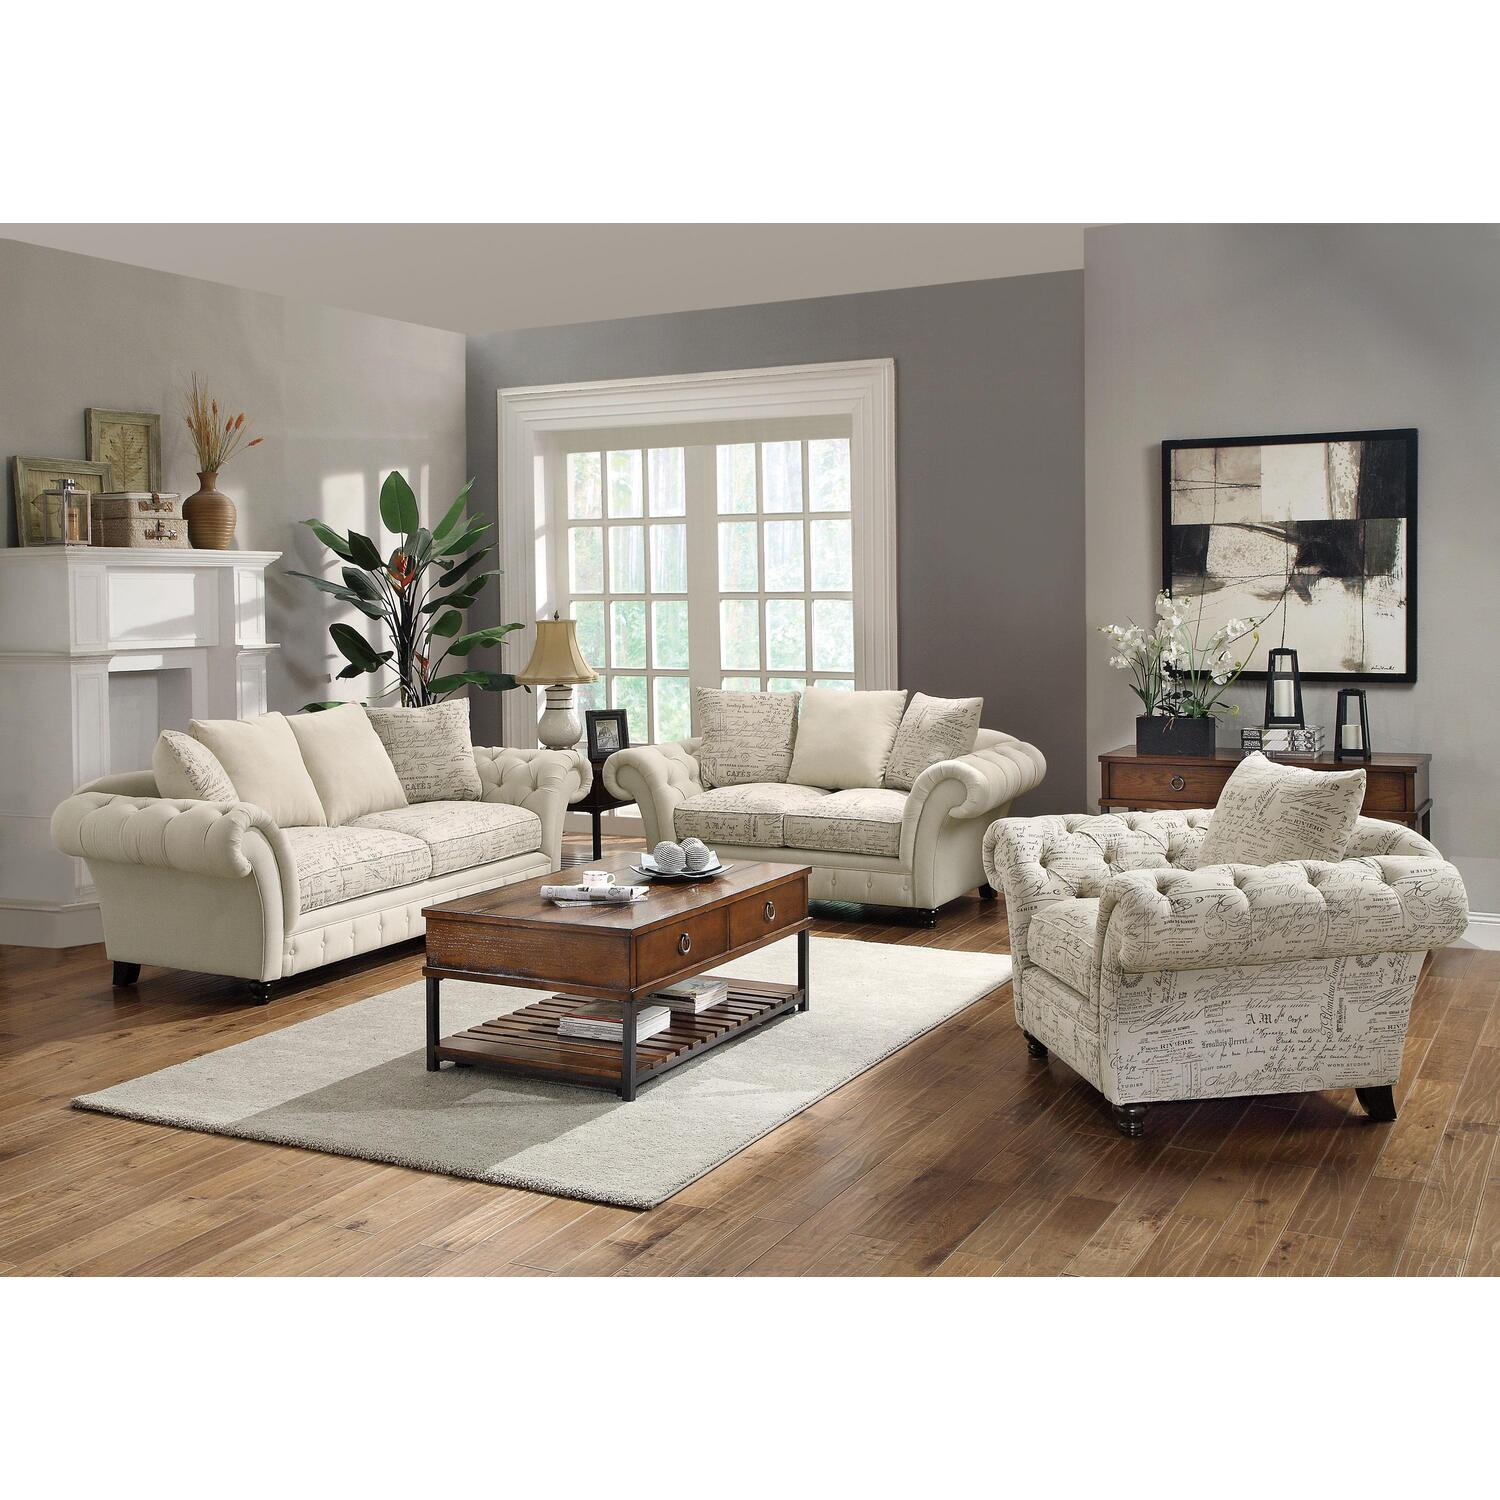 Hollywood Home Willow Living Room Set By Oj Commerce